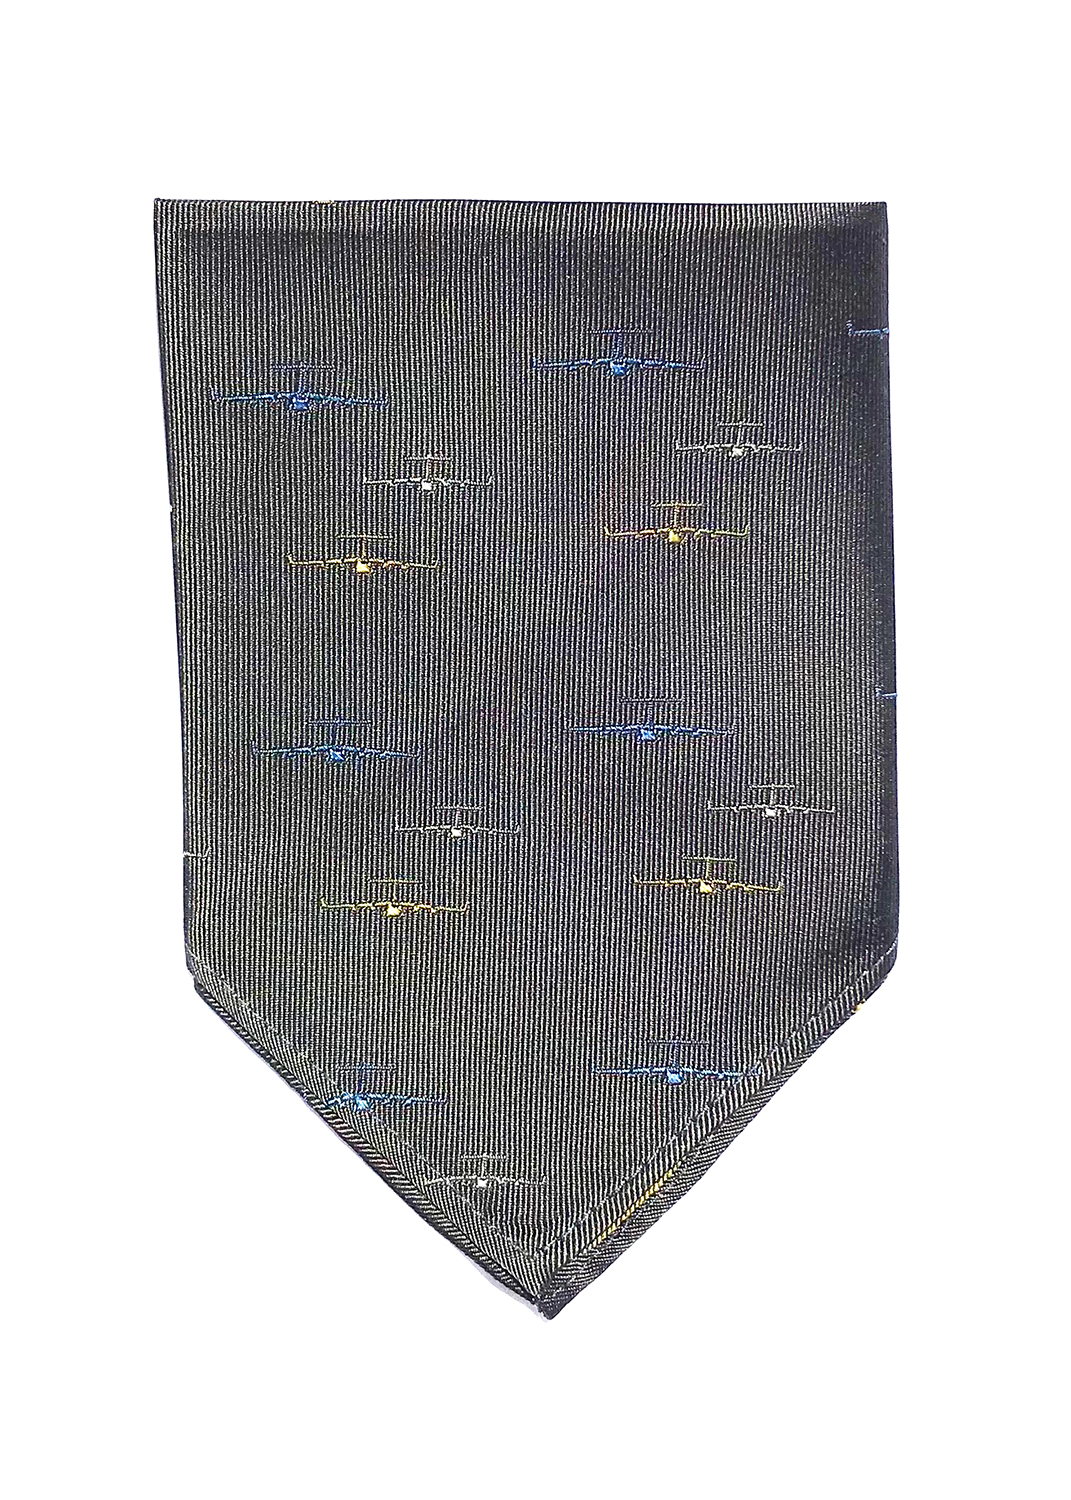 doppeldecker design aviation aircraft airplane pocket square C17